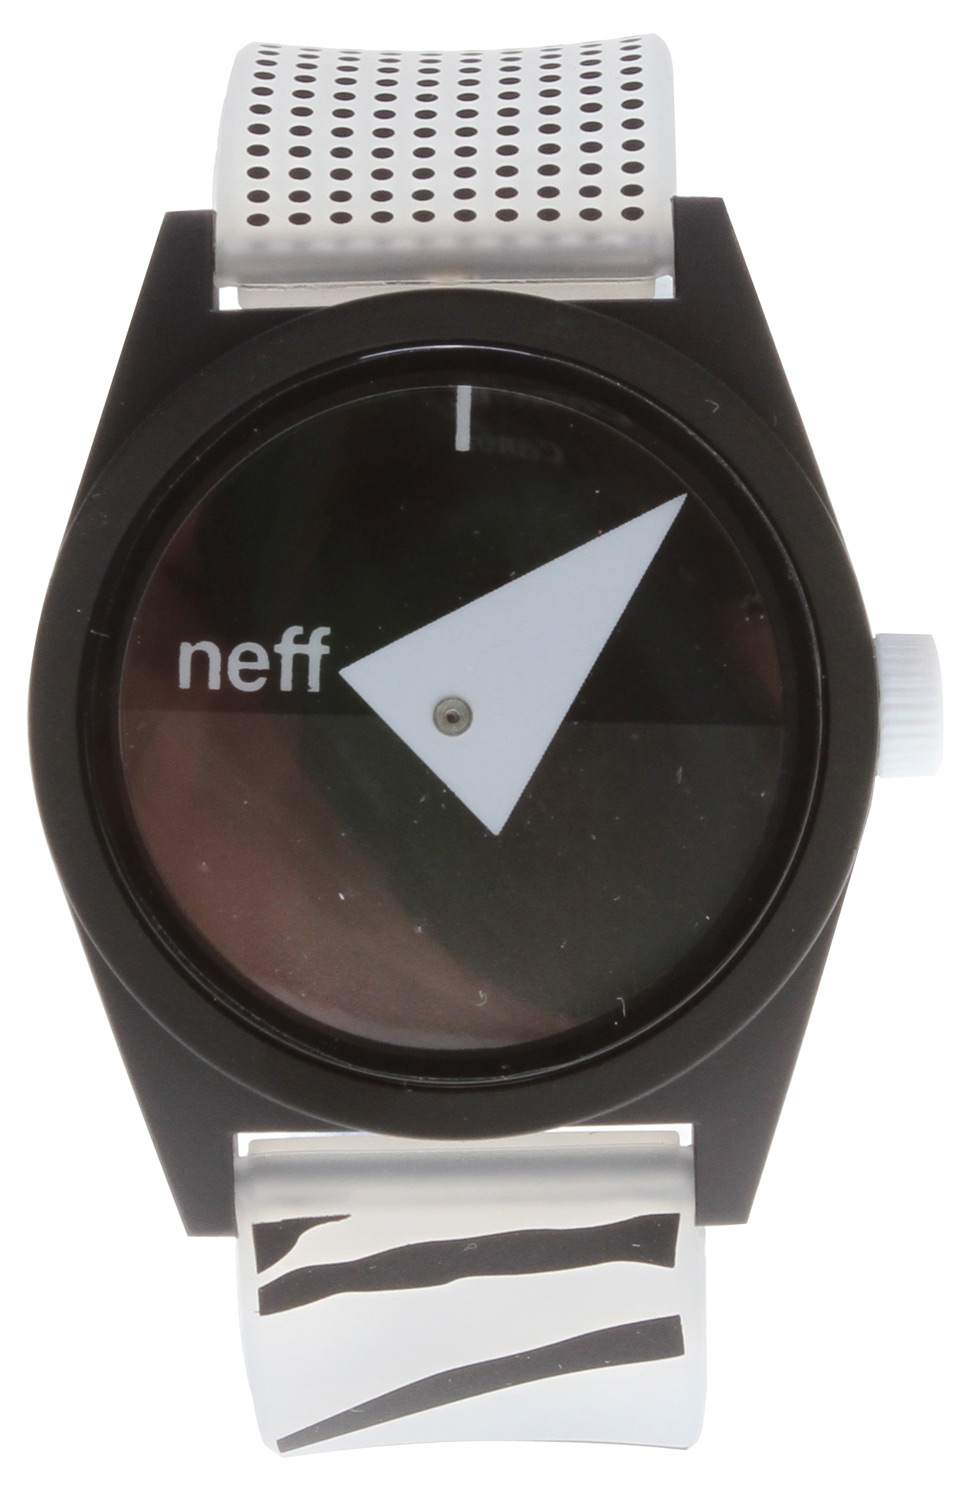 Skateboard Key Features of the Neff Daily Wild Watch: Custom Designed Neff Watch ABS Case and PU Straps Water resistant to 5 ATM Adjustable - $24.95